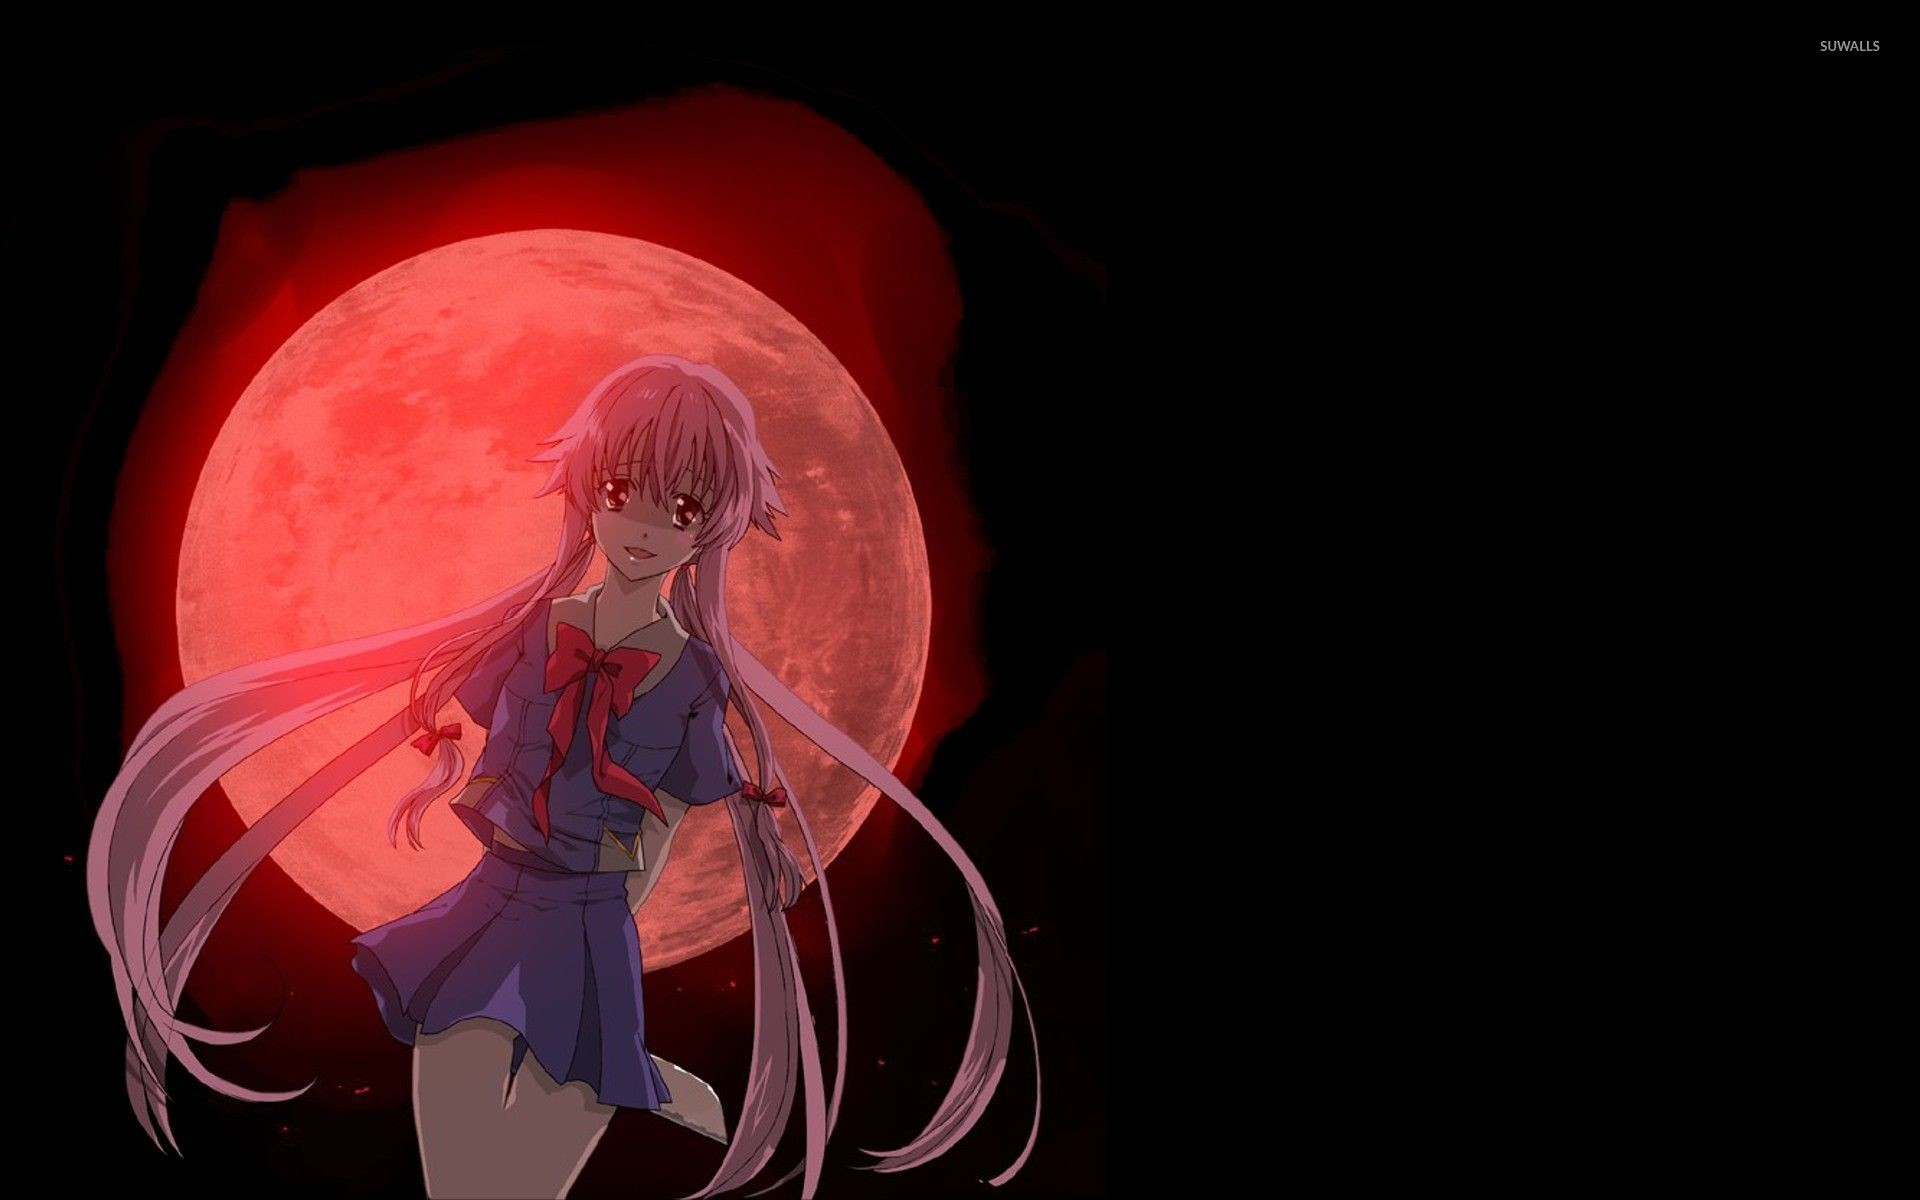 1920x1200 Yuno Gasai - Future Diary [7] wallpaper